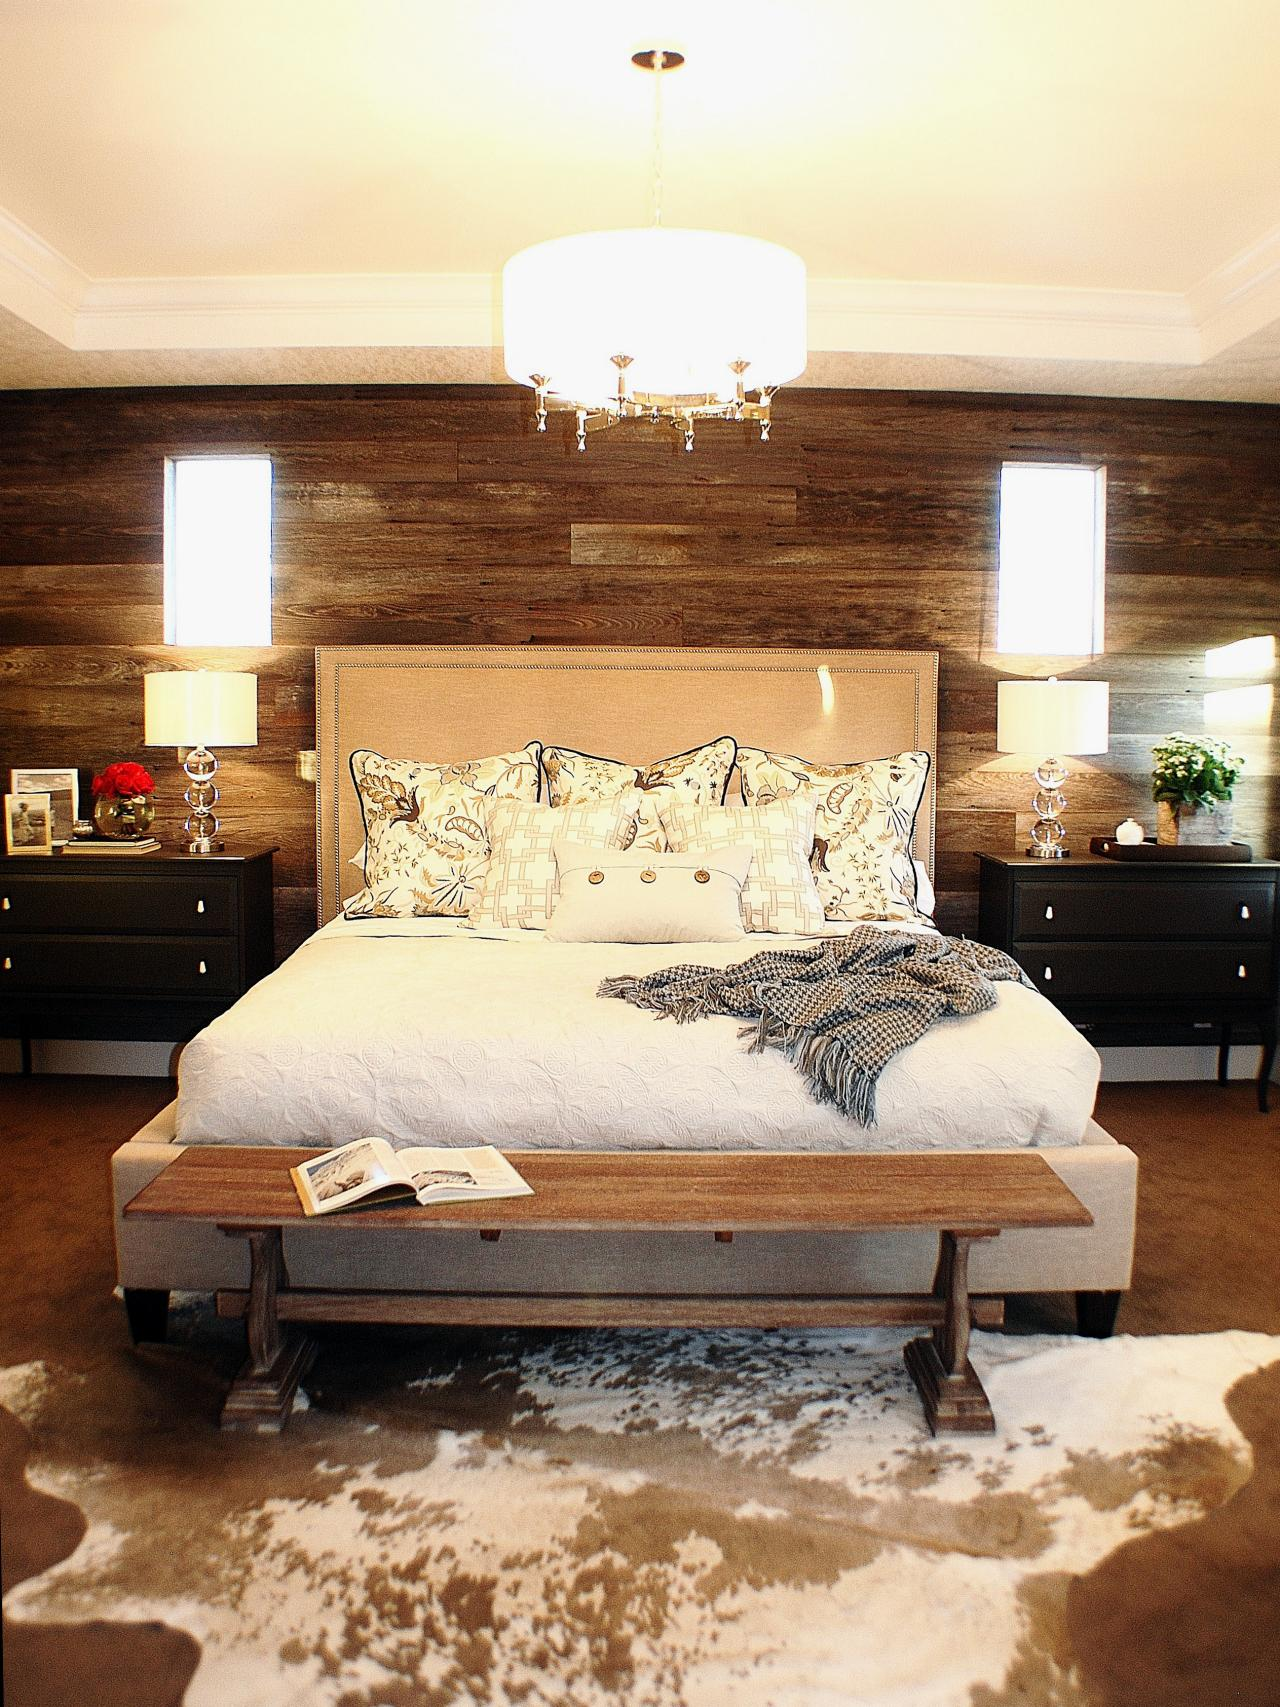 Photos hgtv Modern chic master bedroom